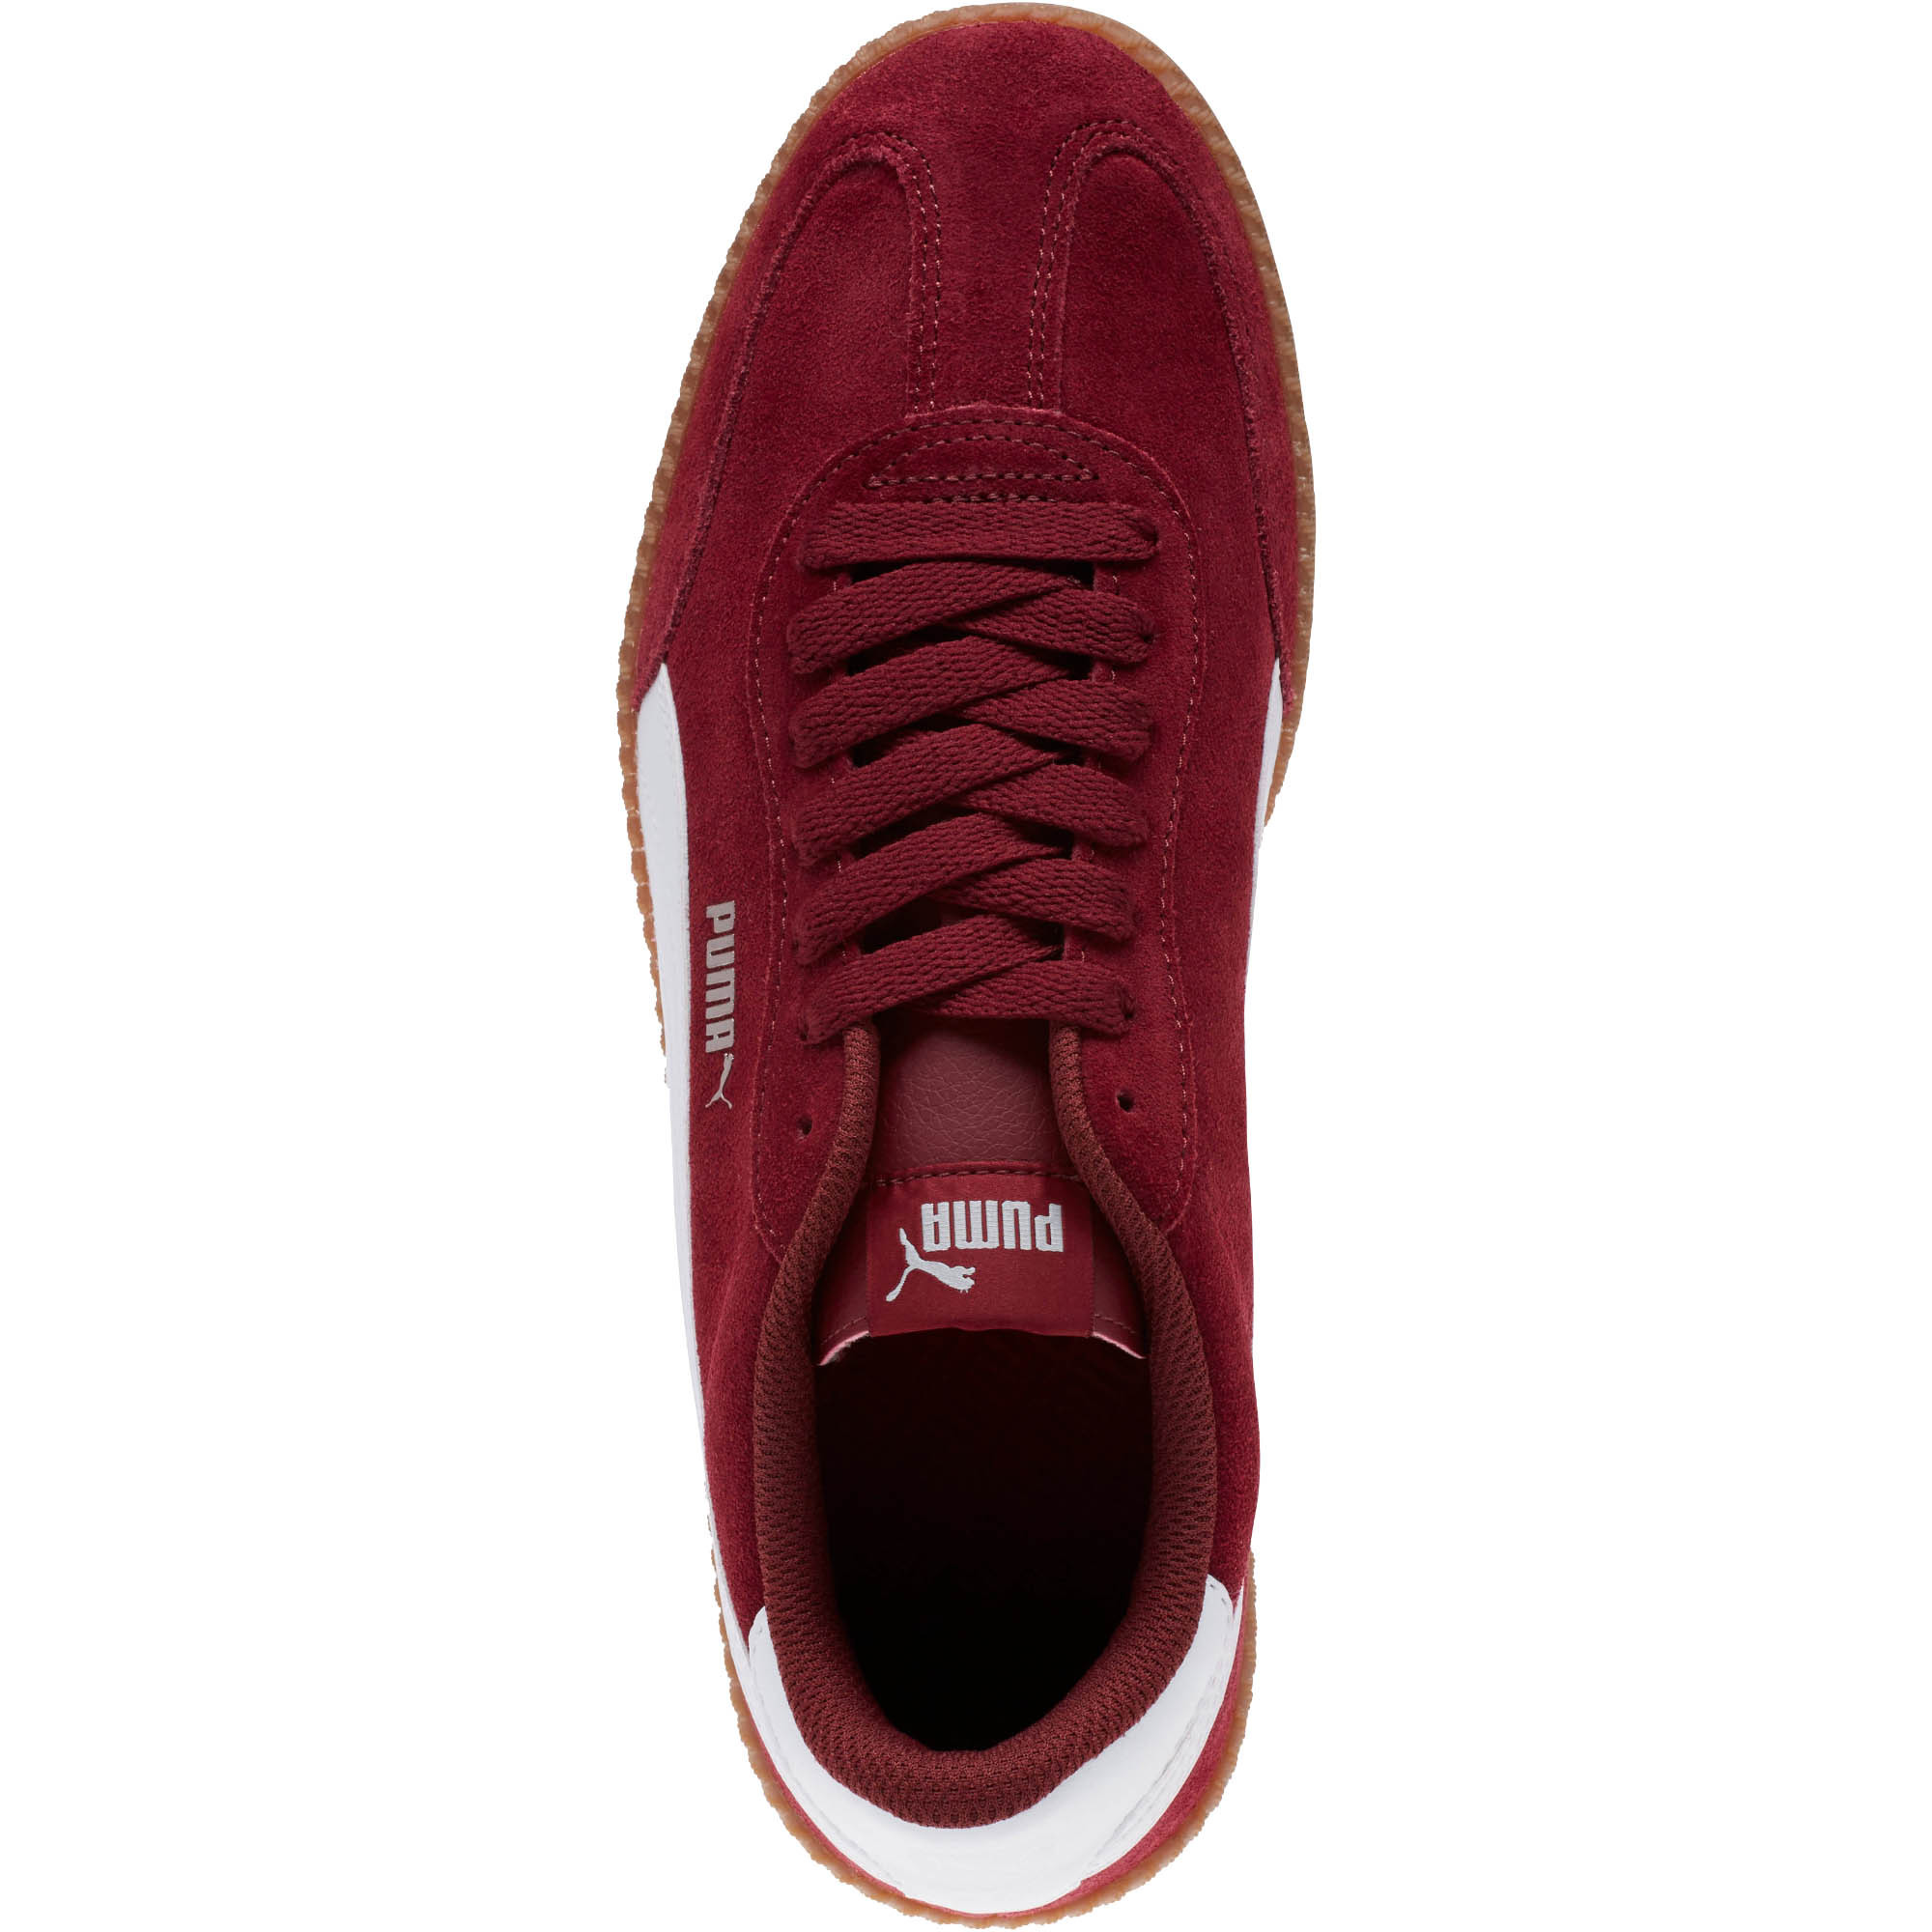 PUMA-Astro-Cup-Suede-Sneakers-Men-Shoe-Basics thumbnail 14